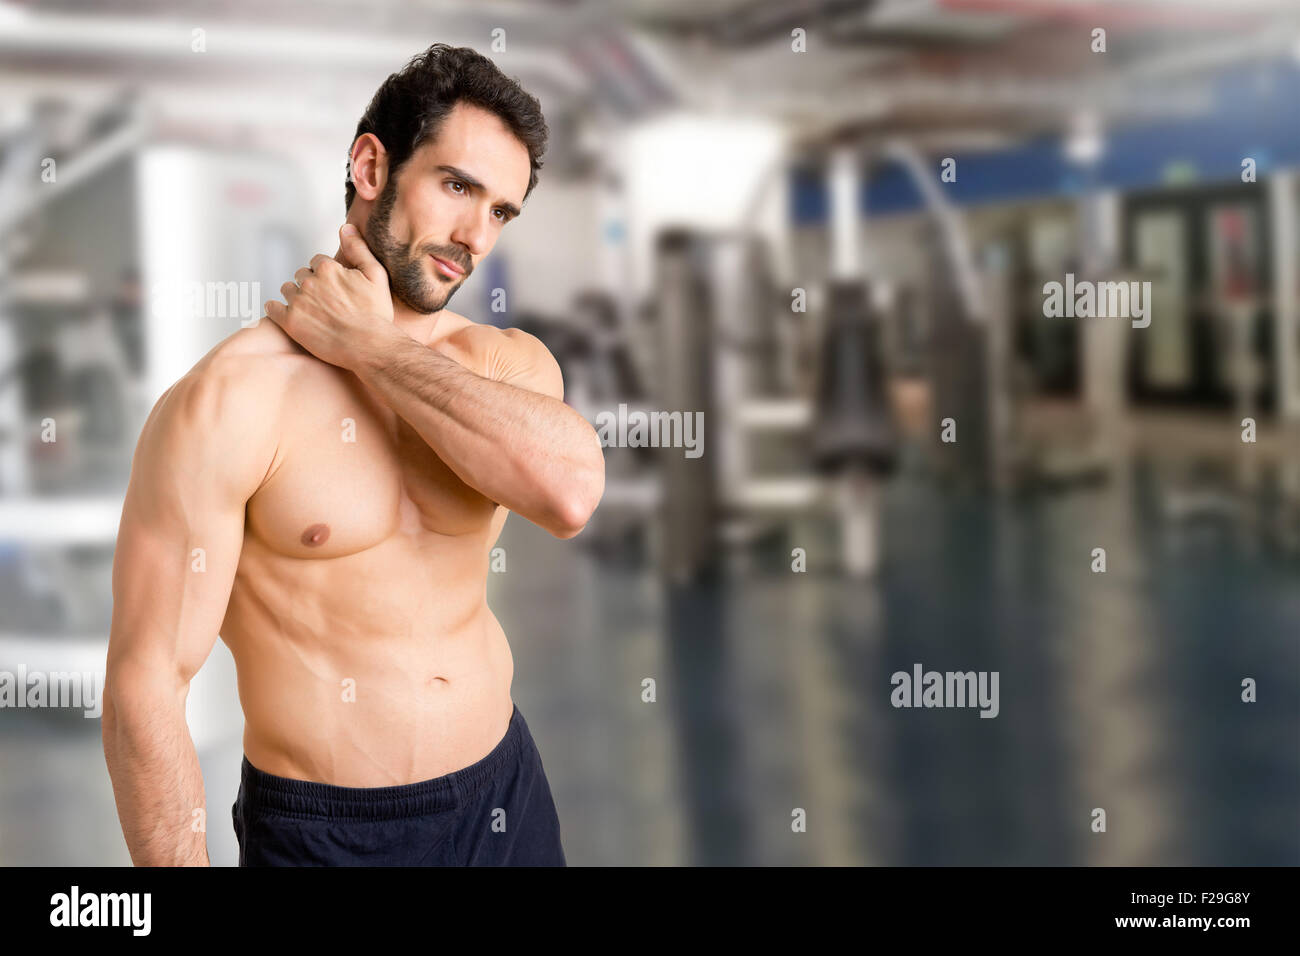 Athlete suffering from neck pain in a gym - Stock Image